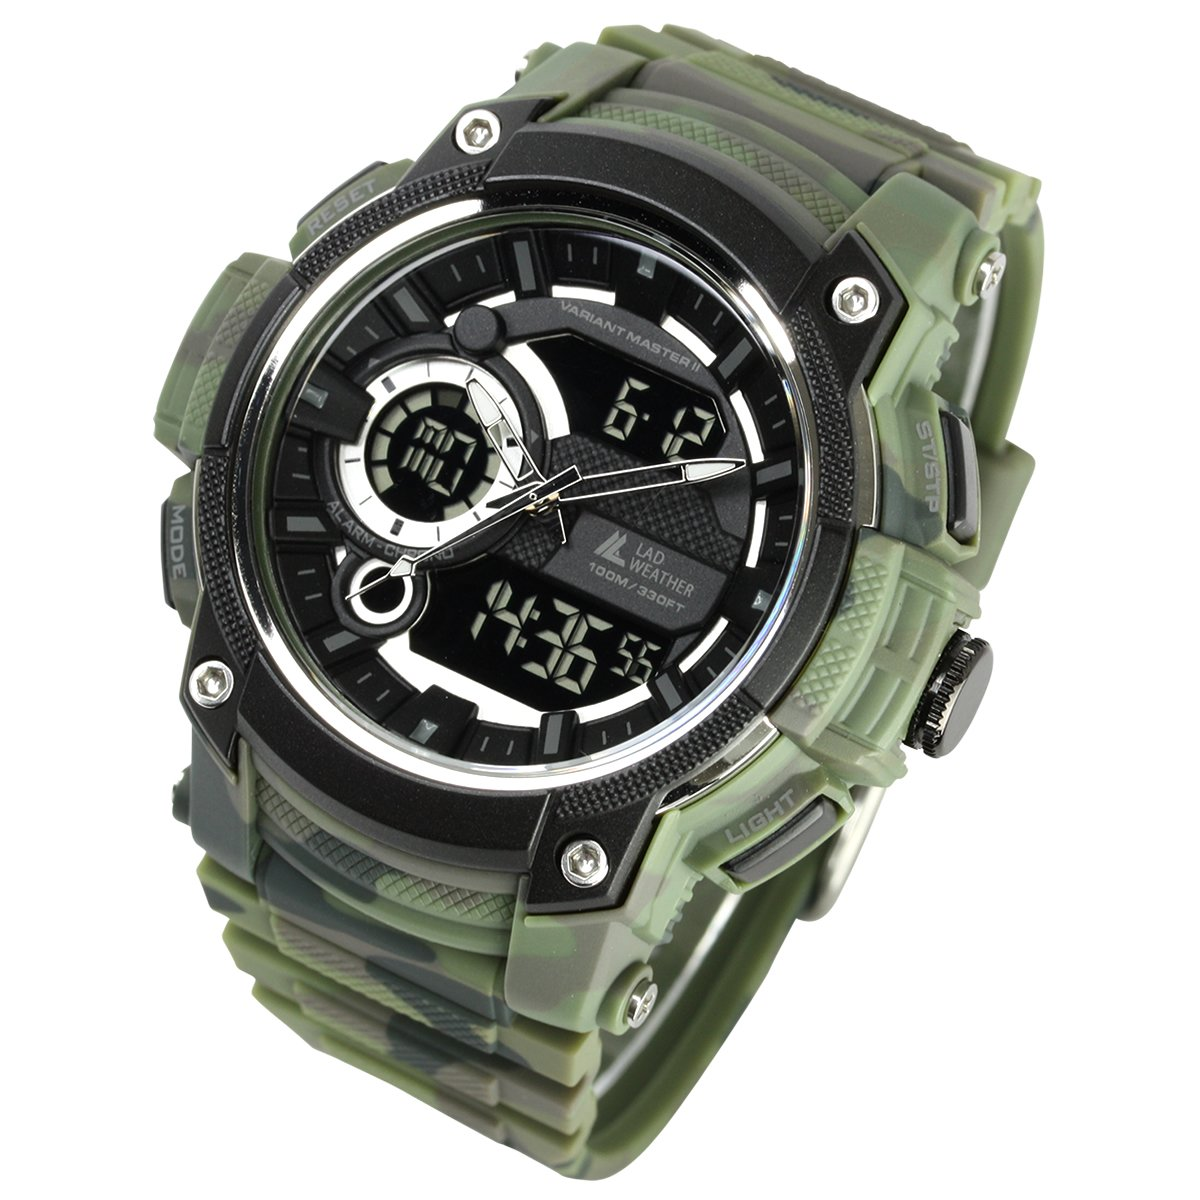 [LAD WEATHER] Triple time/ Military/Camouflage/Outdoor/Men's Watch by LAD WEATHER